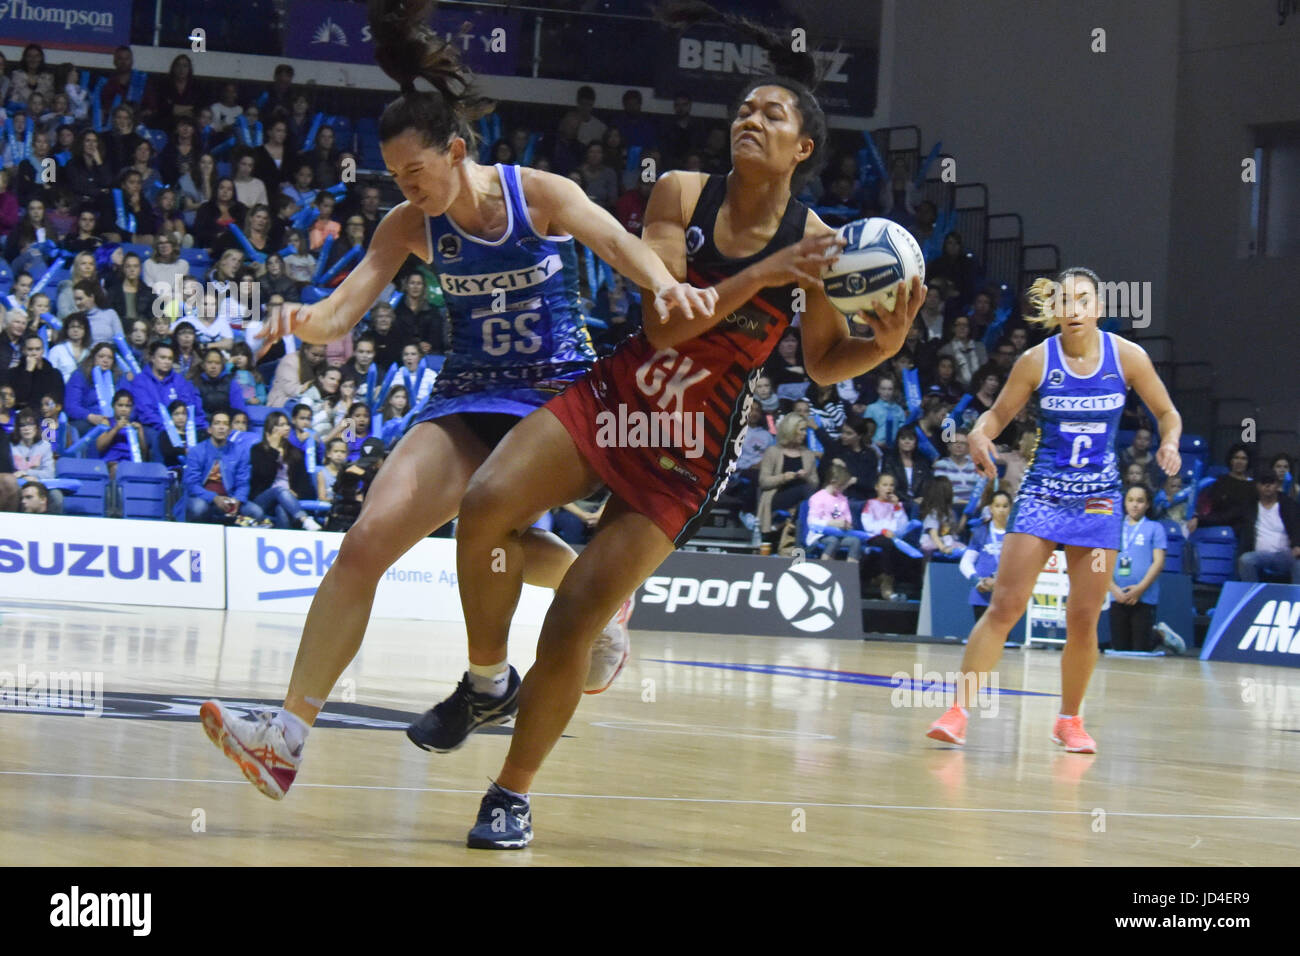 Auckland, New Zealand. 18th June, 2017. Temalisi Fakahokotau of Tactix and Balley Mes of Mystics clash for the ball - Stock Image